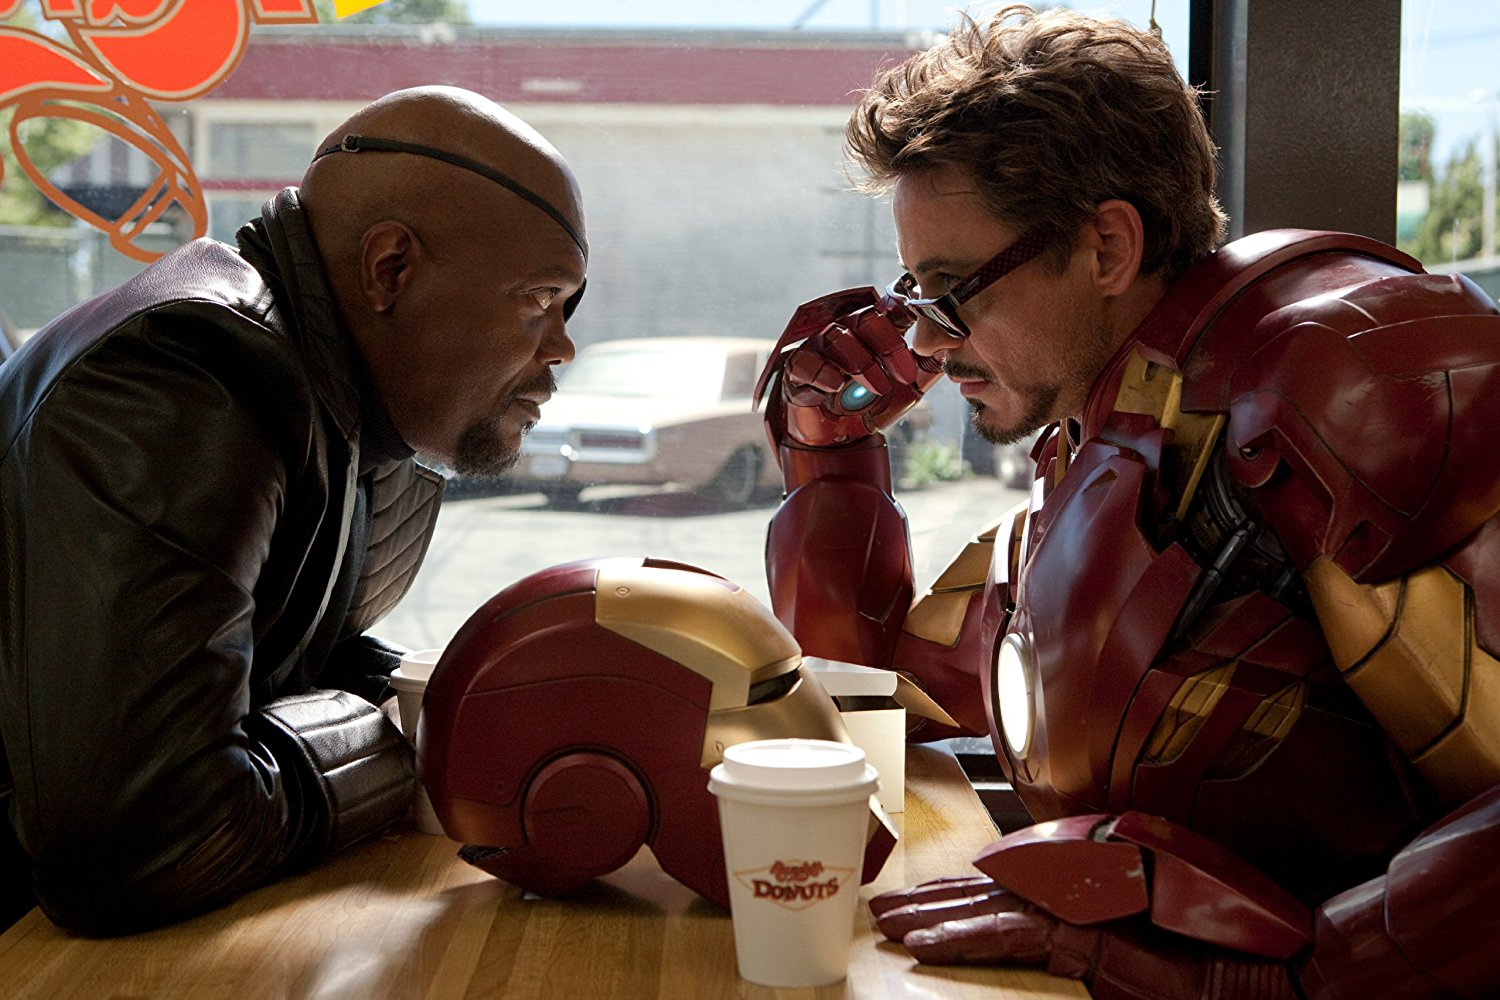 Nick Fury (Samuel L. Jackson, left) and Tony Stark/Iron Man (Robert Downey Jr.) in 'Iron Man 2' (2010).